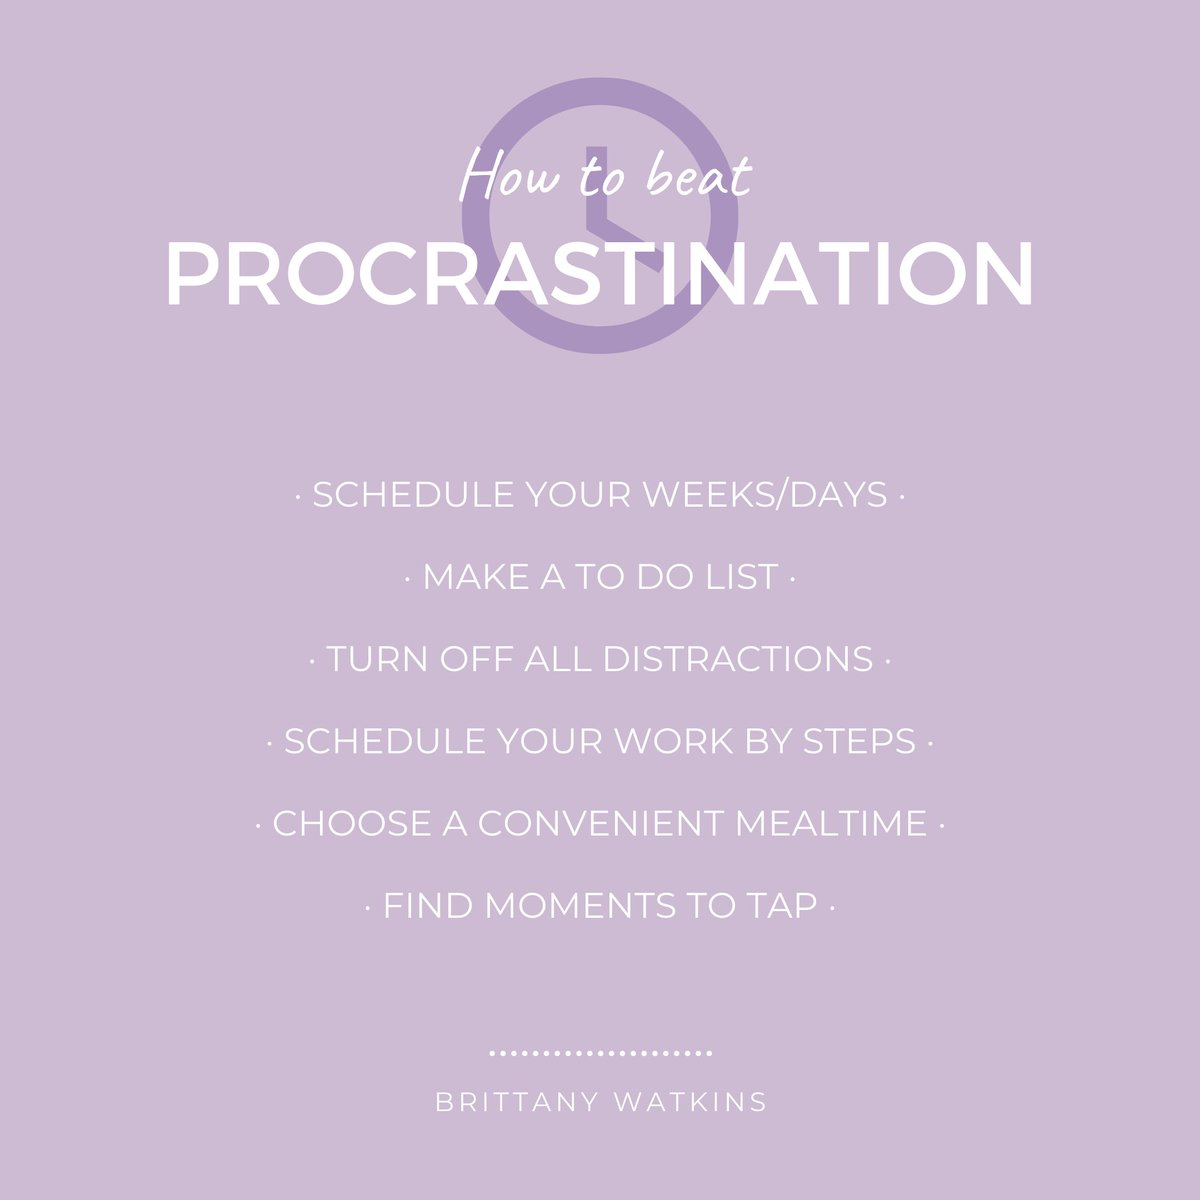 I know how easy it is to put things off with the intention of getting to them tomorrow or next week. But when tomorrow or next week comes and you find yourself wondering how you will get everything done, that's when you regret procrastinating. #procrastination #SelfCare #EFT https://t.co/b6Jy995tIG